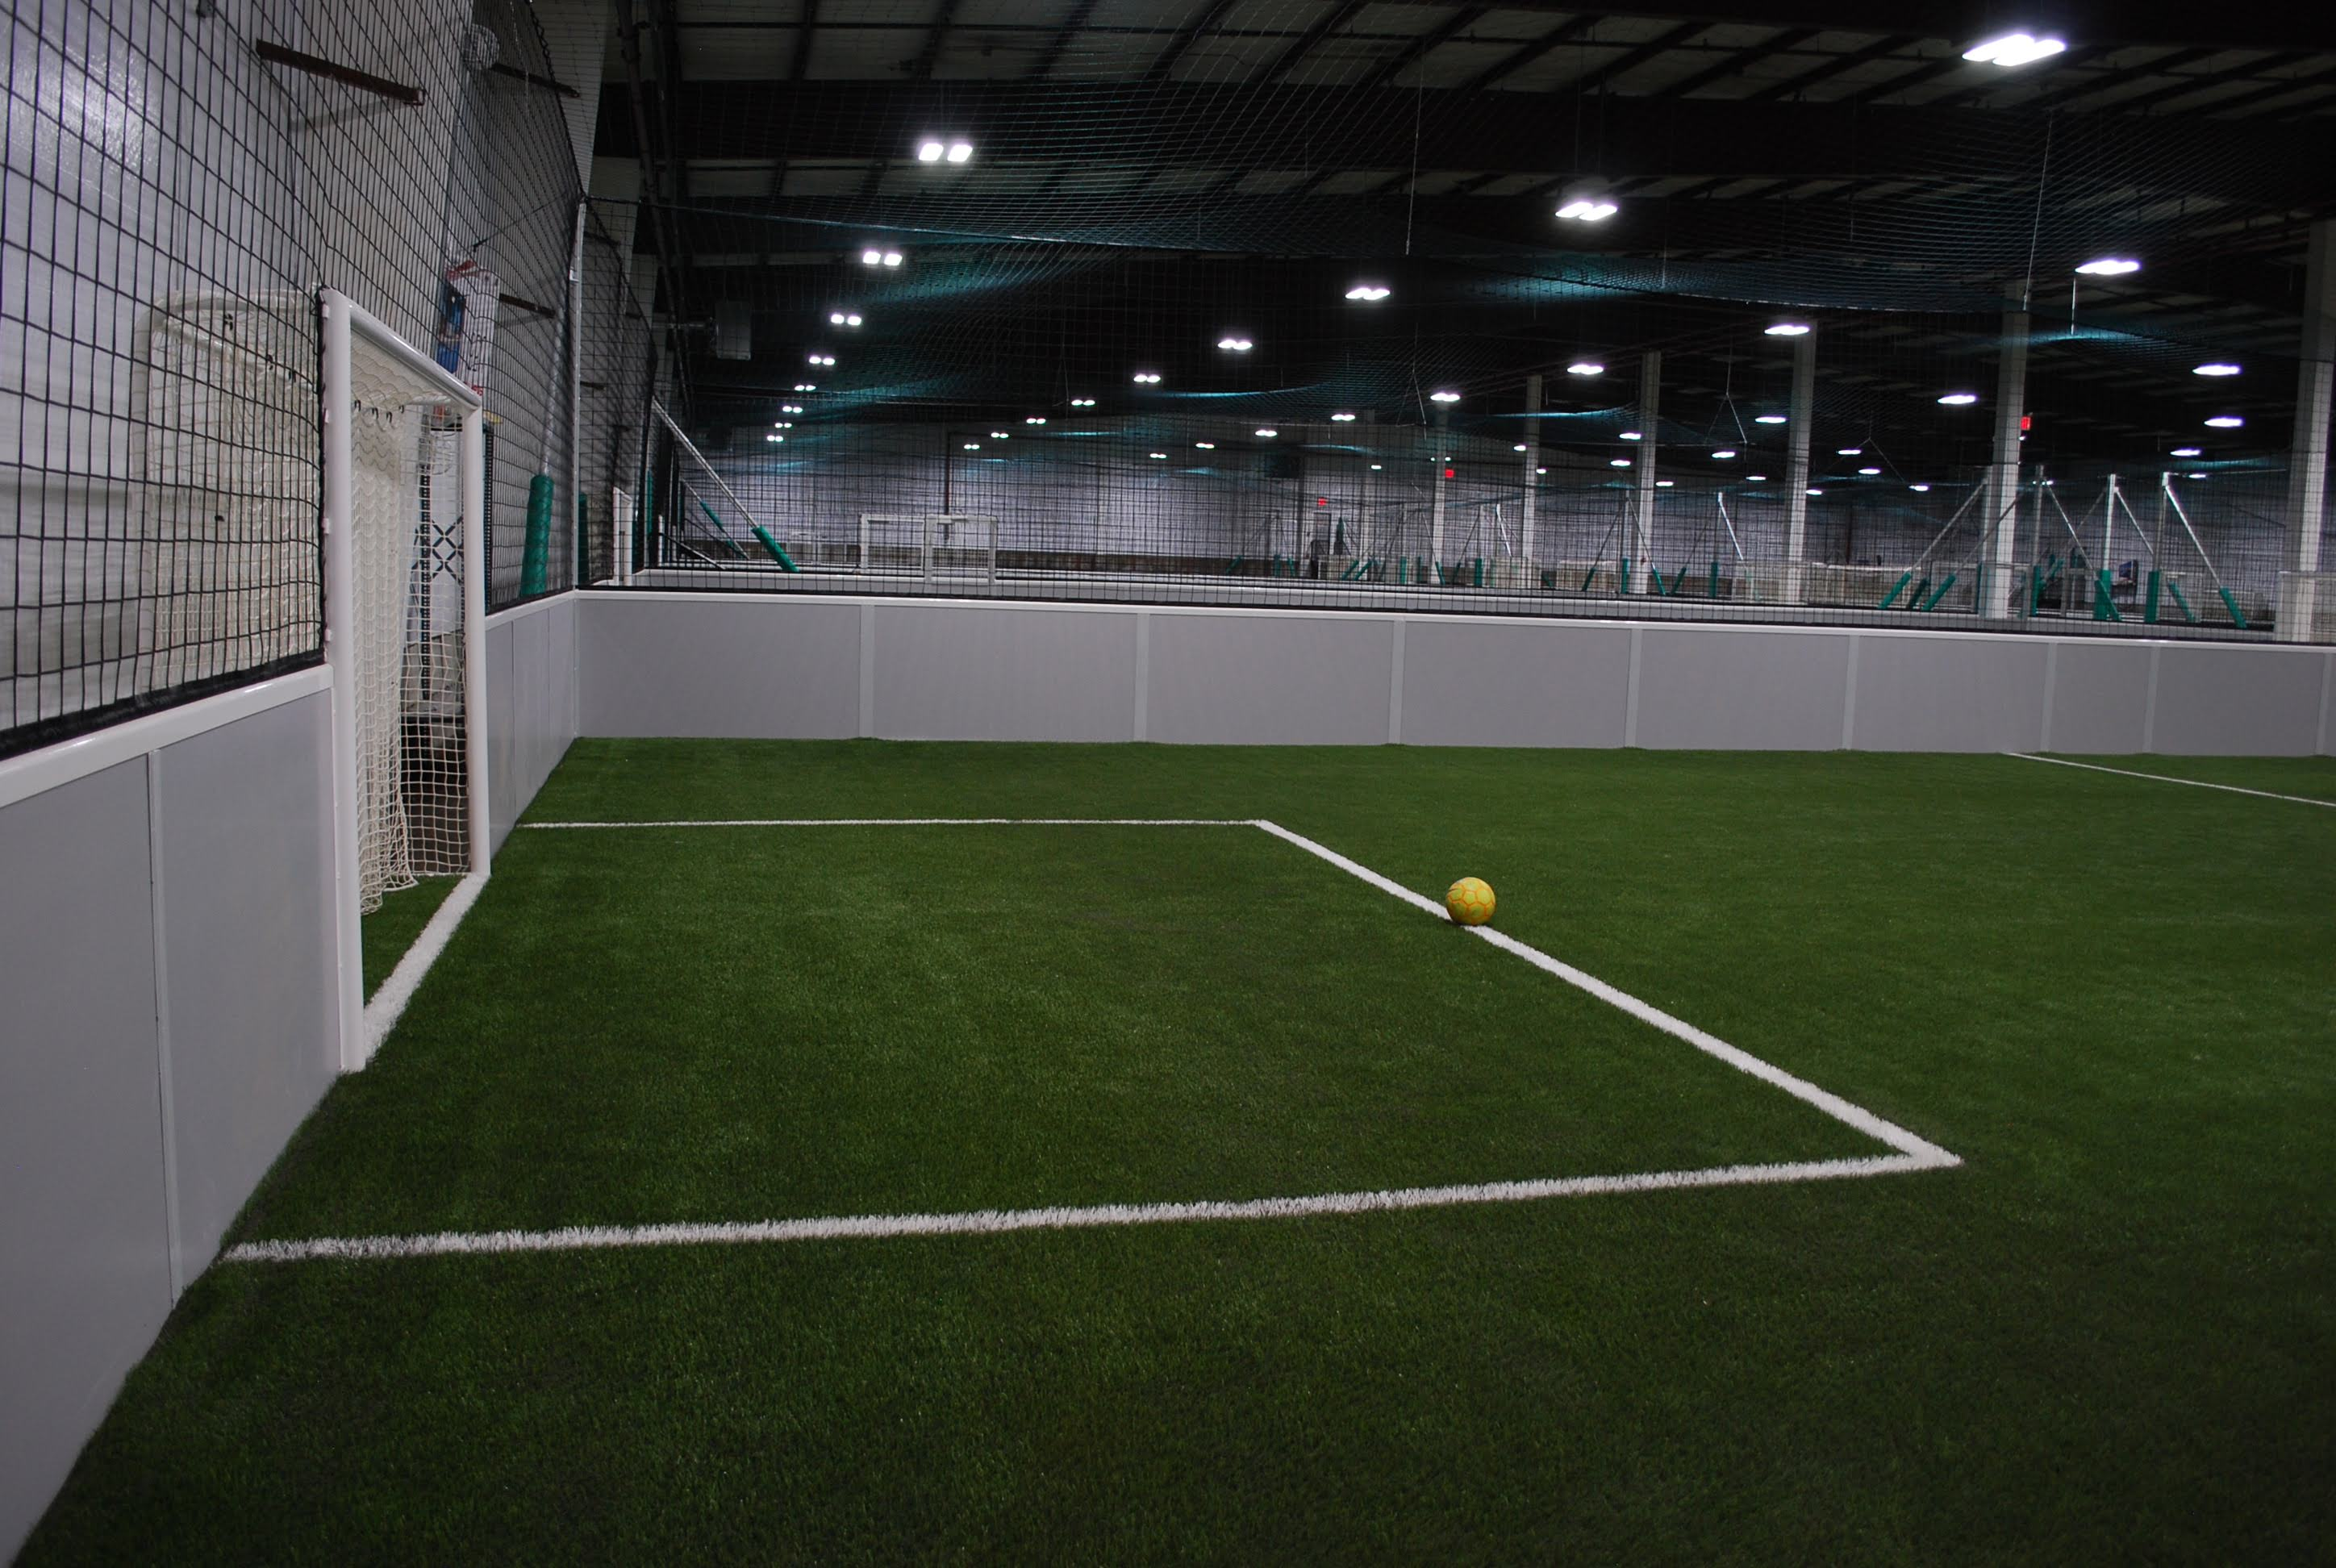 3a9e1a996b2 Customizing the soccer center: reception, changing rooms, floor coverings,  etc.